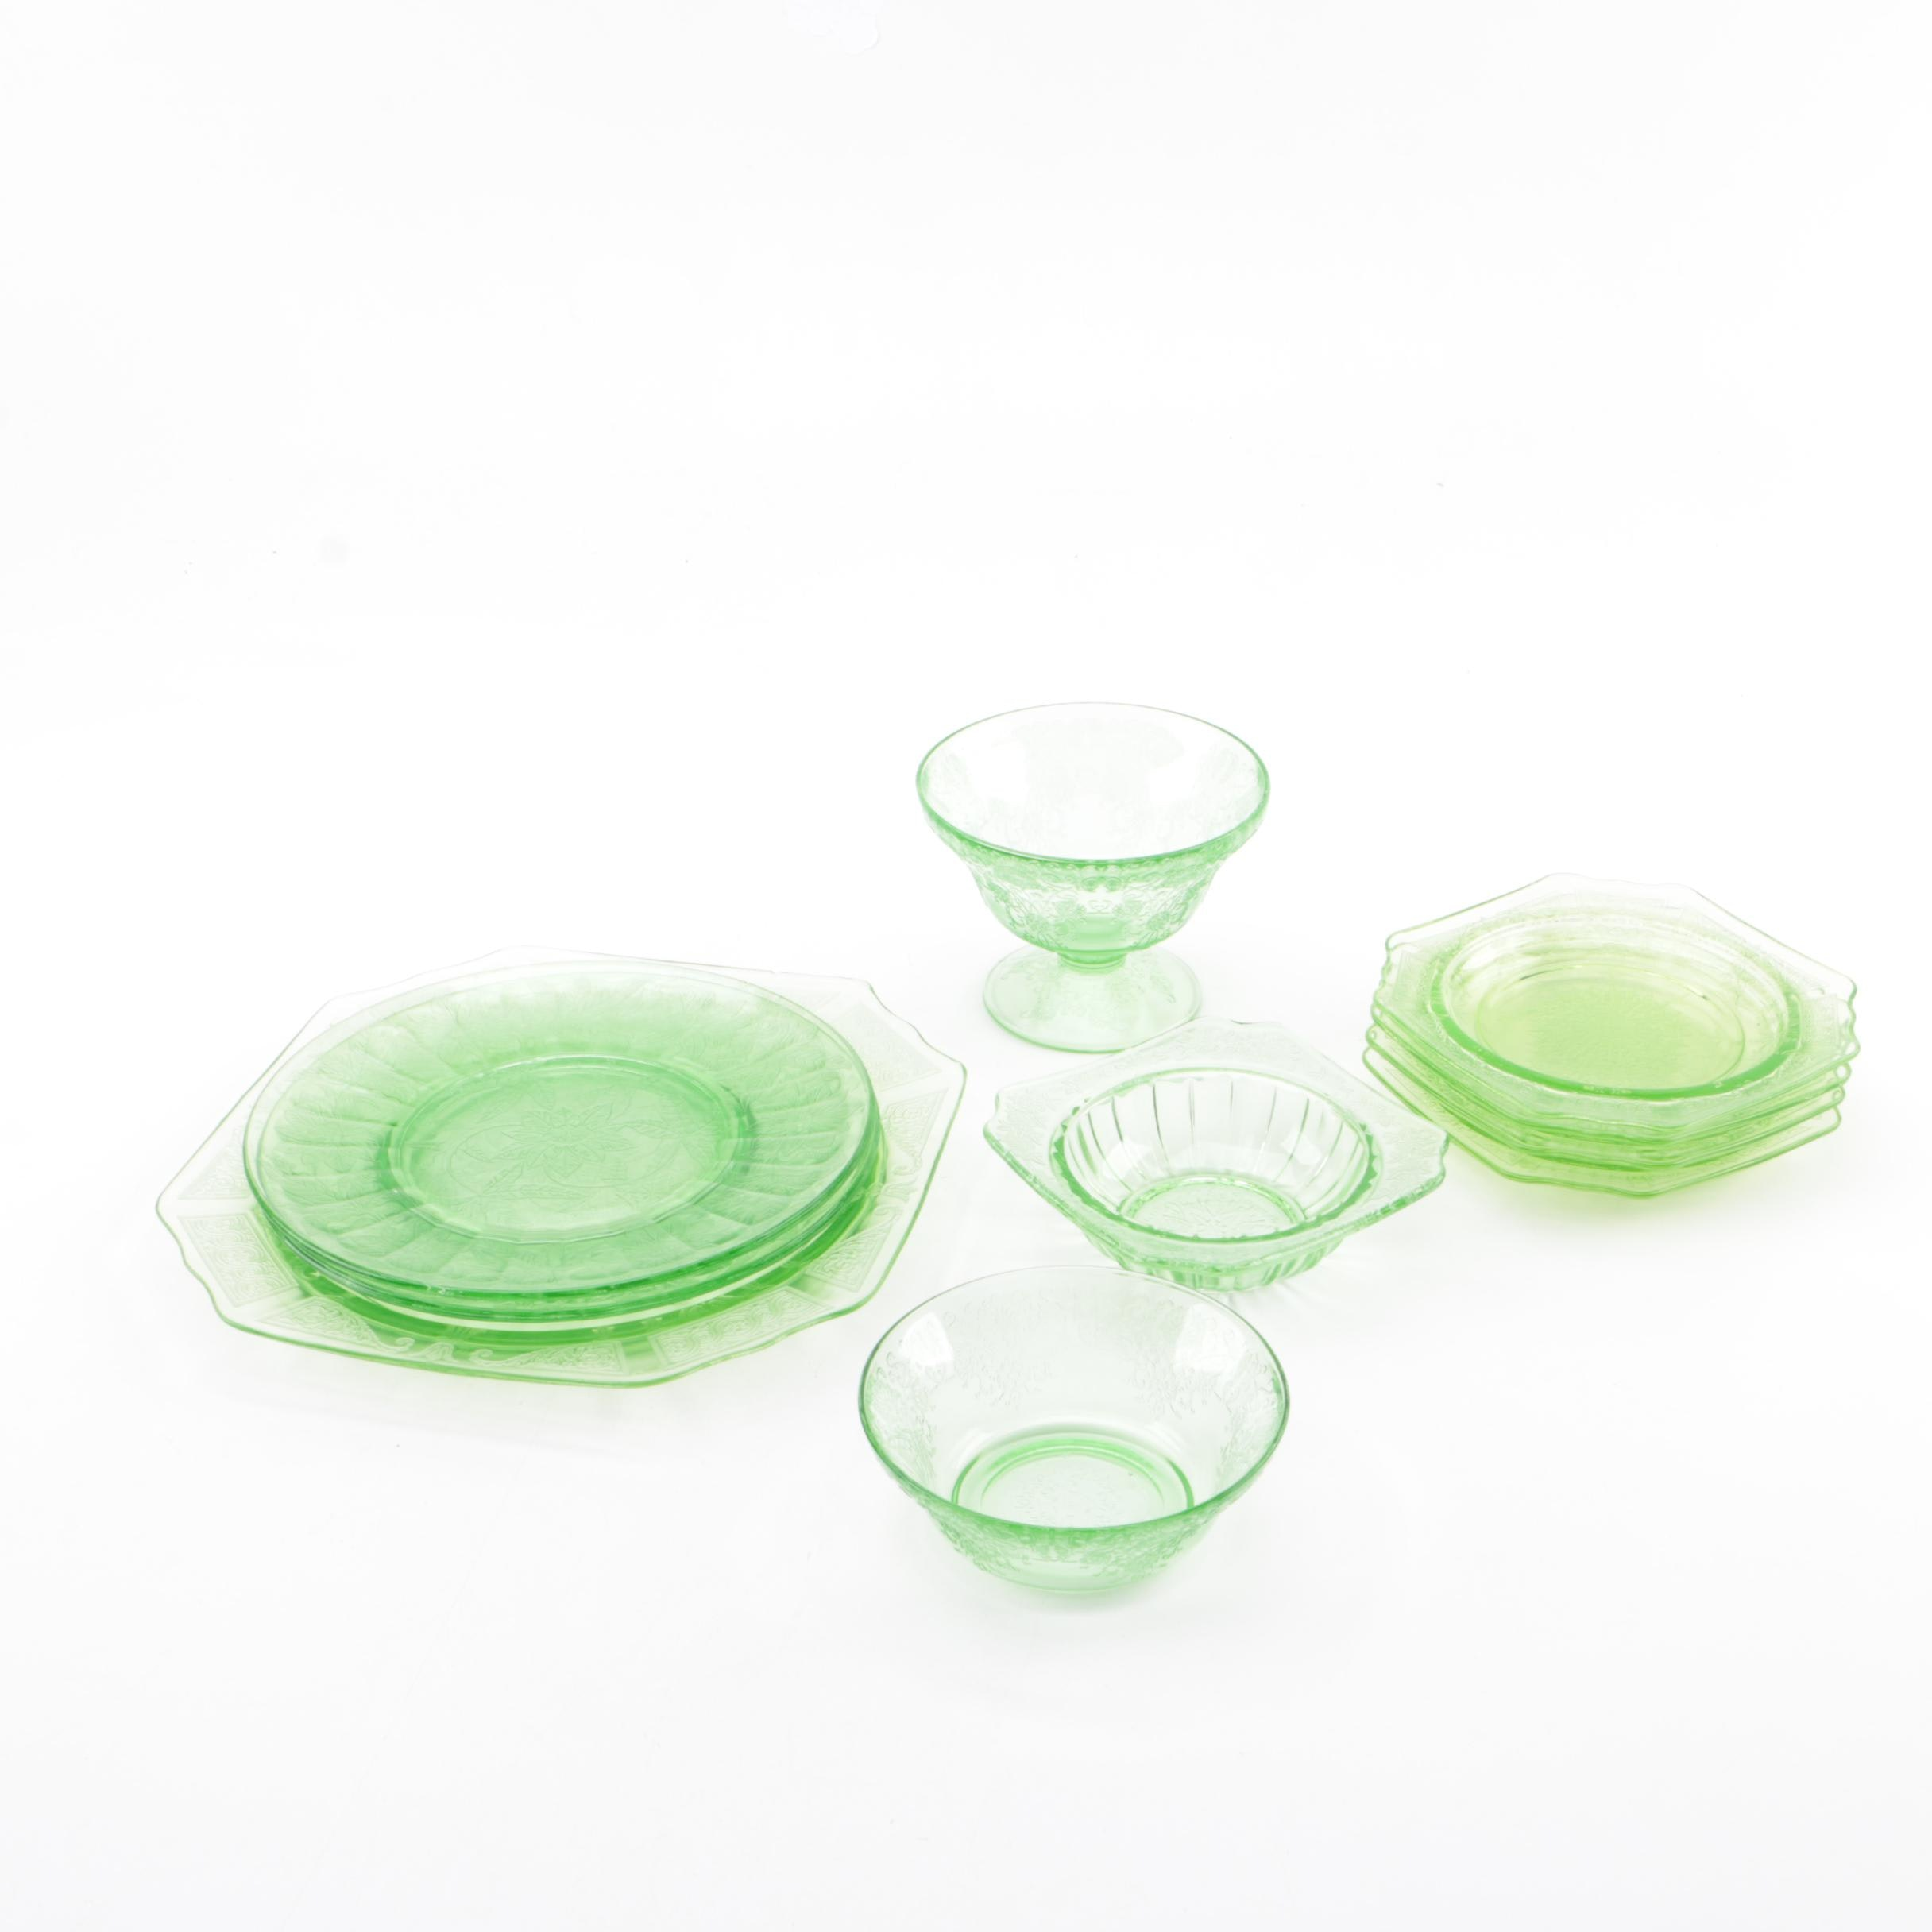 Collection of Green Depression Glass Tableware